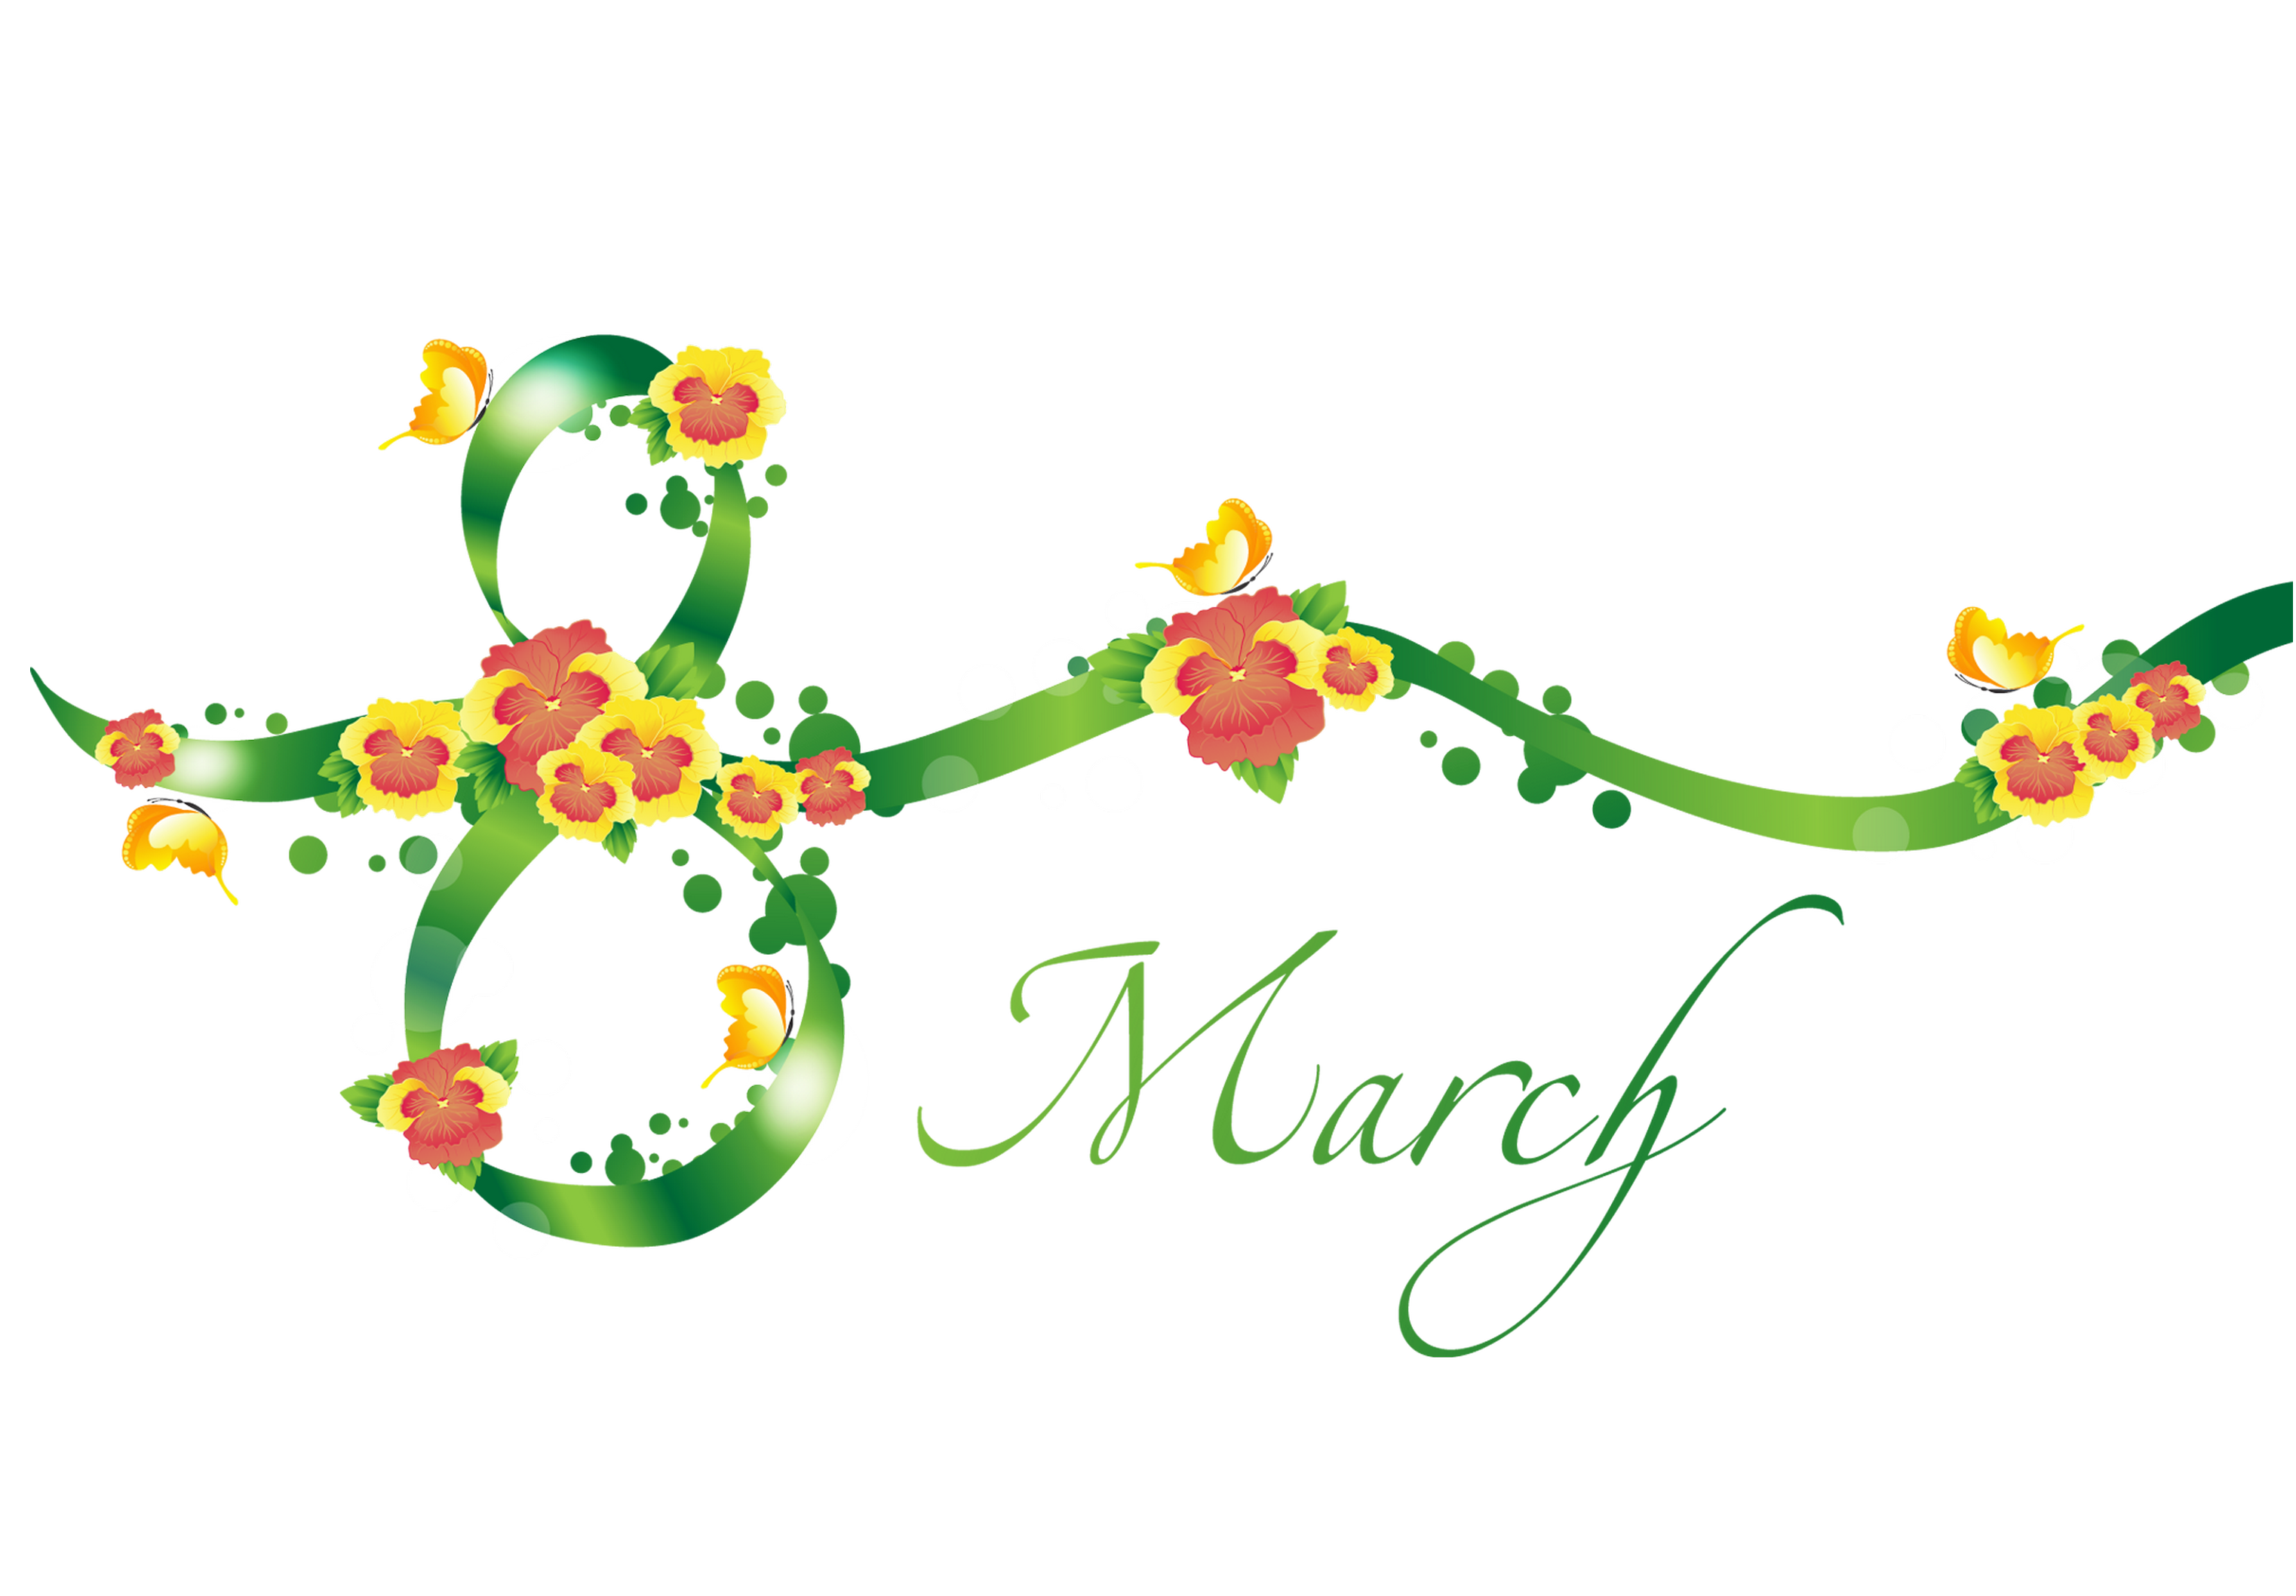 March freebie clipart free clip art image image